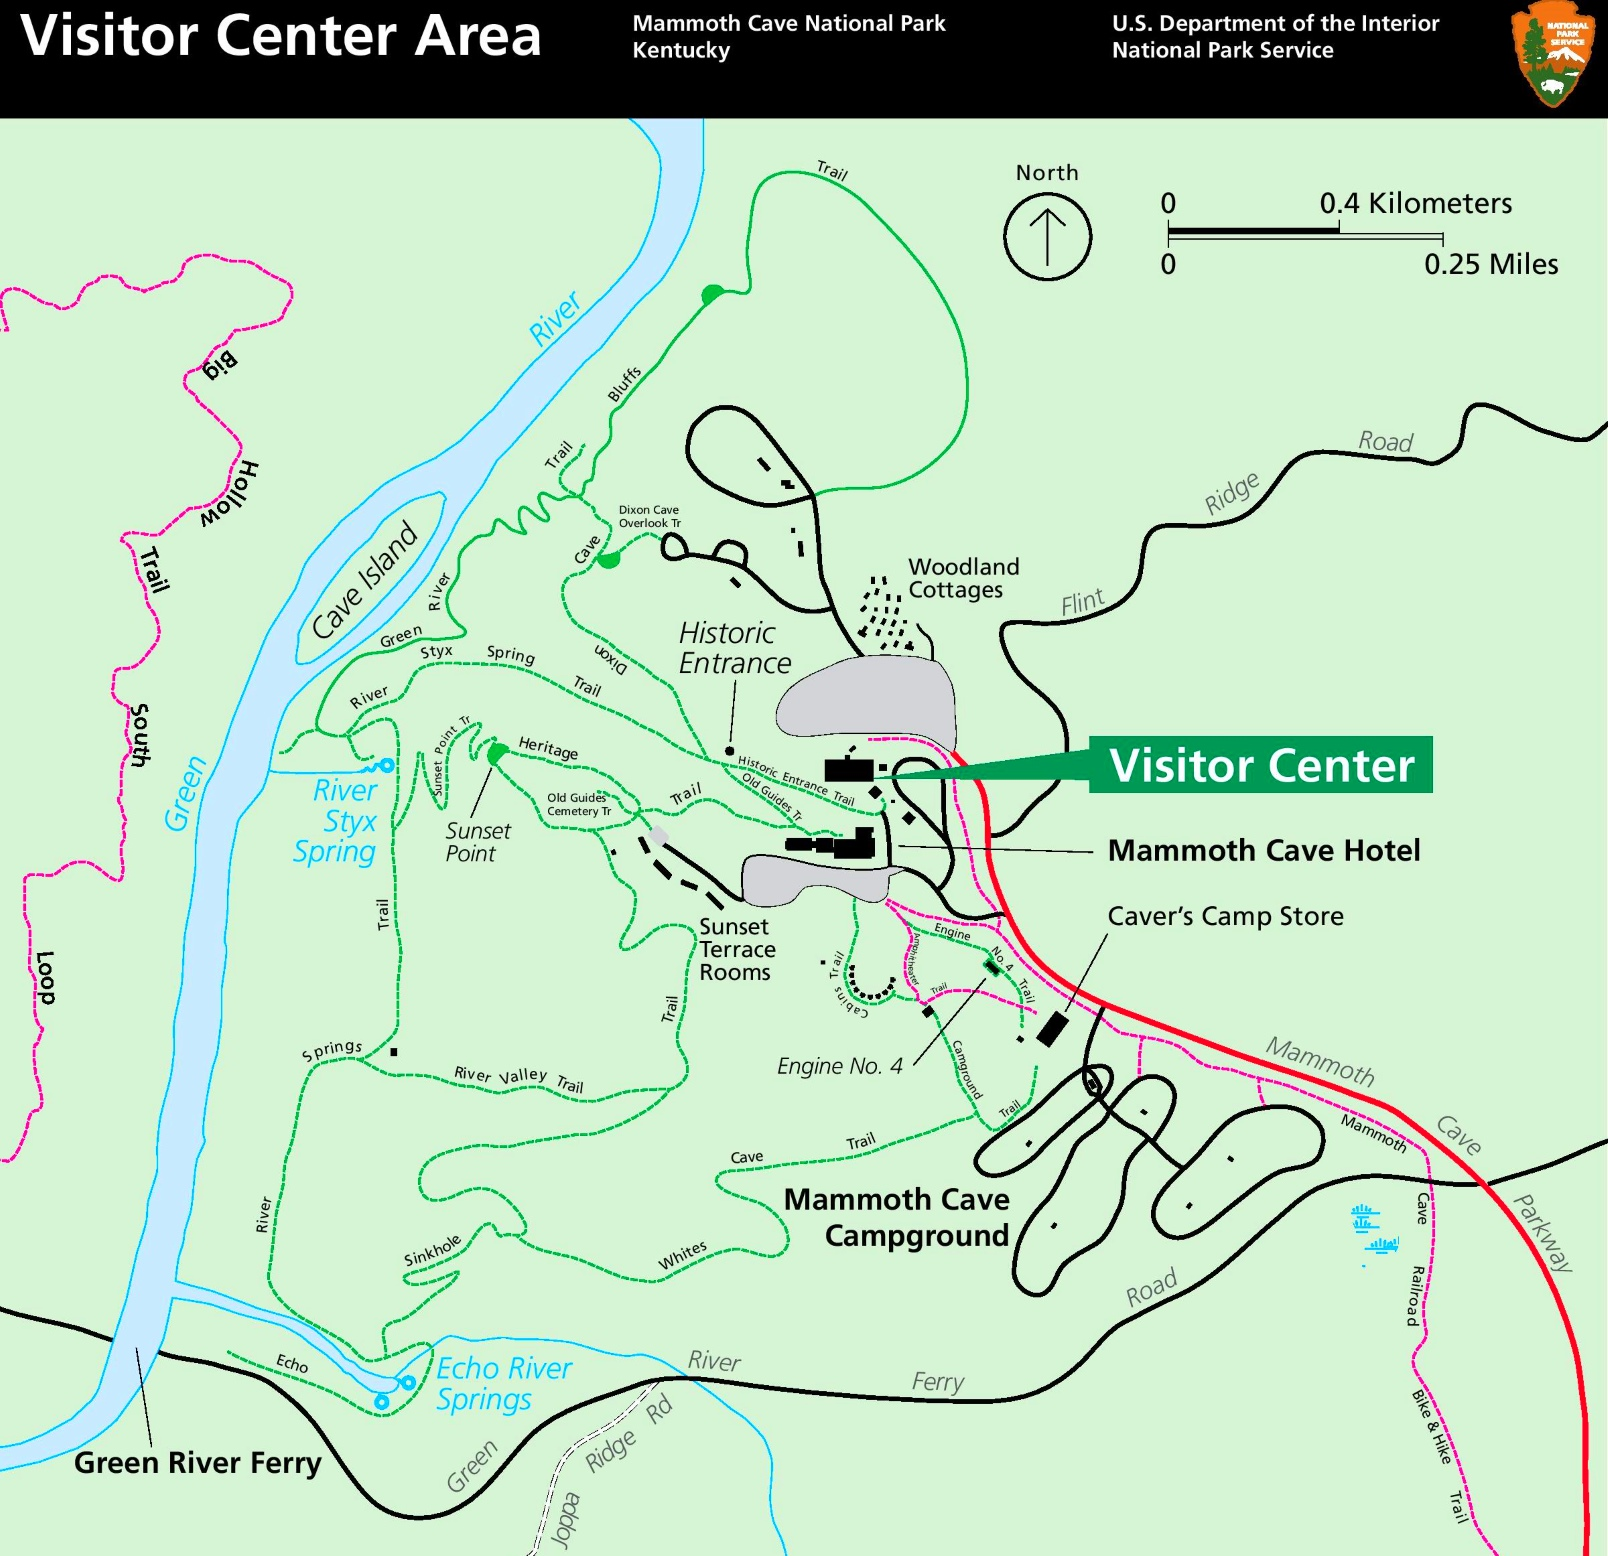 Mammoth Cave visitor center area tourist map